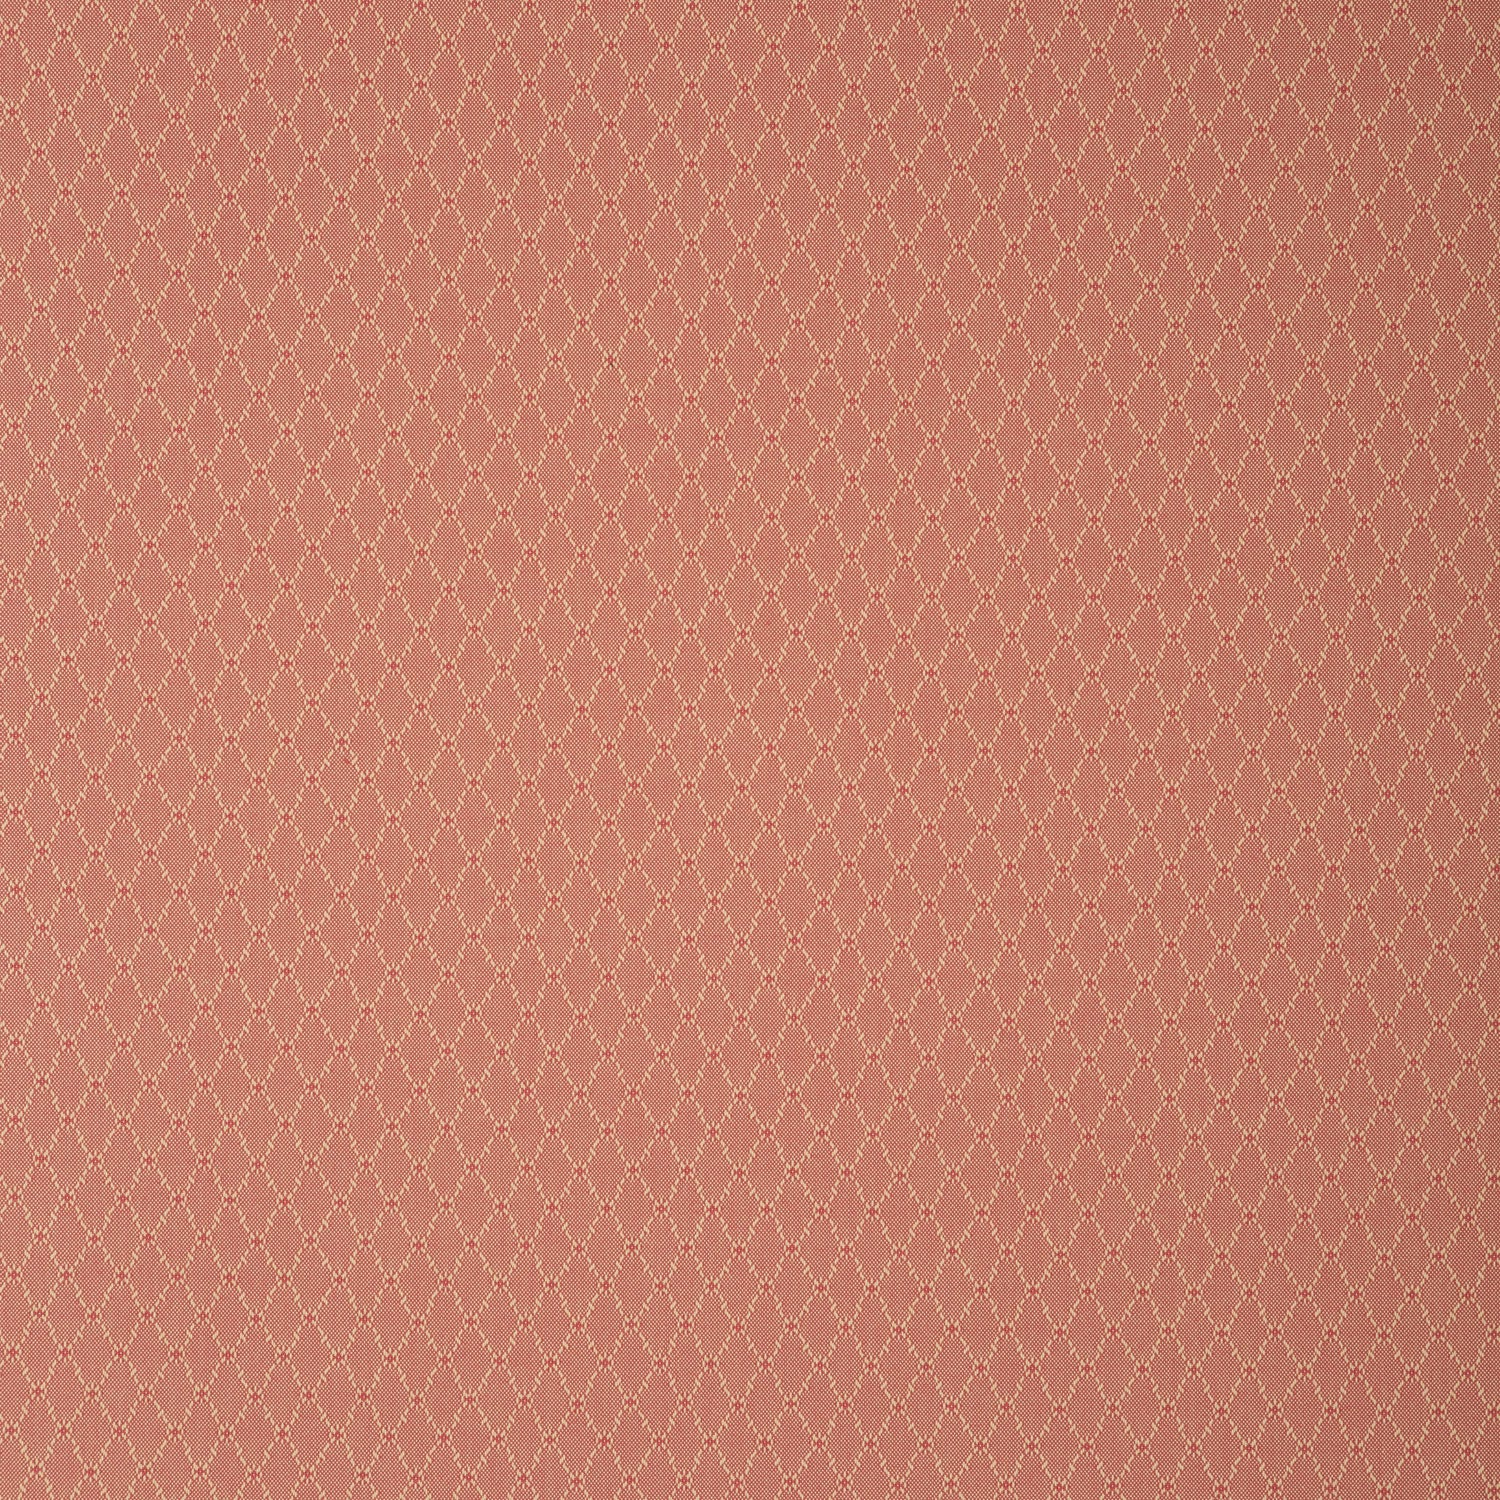 Fabric swatch of a light red fabric with trellis design for curtains and upholstery with a stain resistant finish